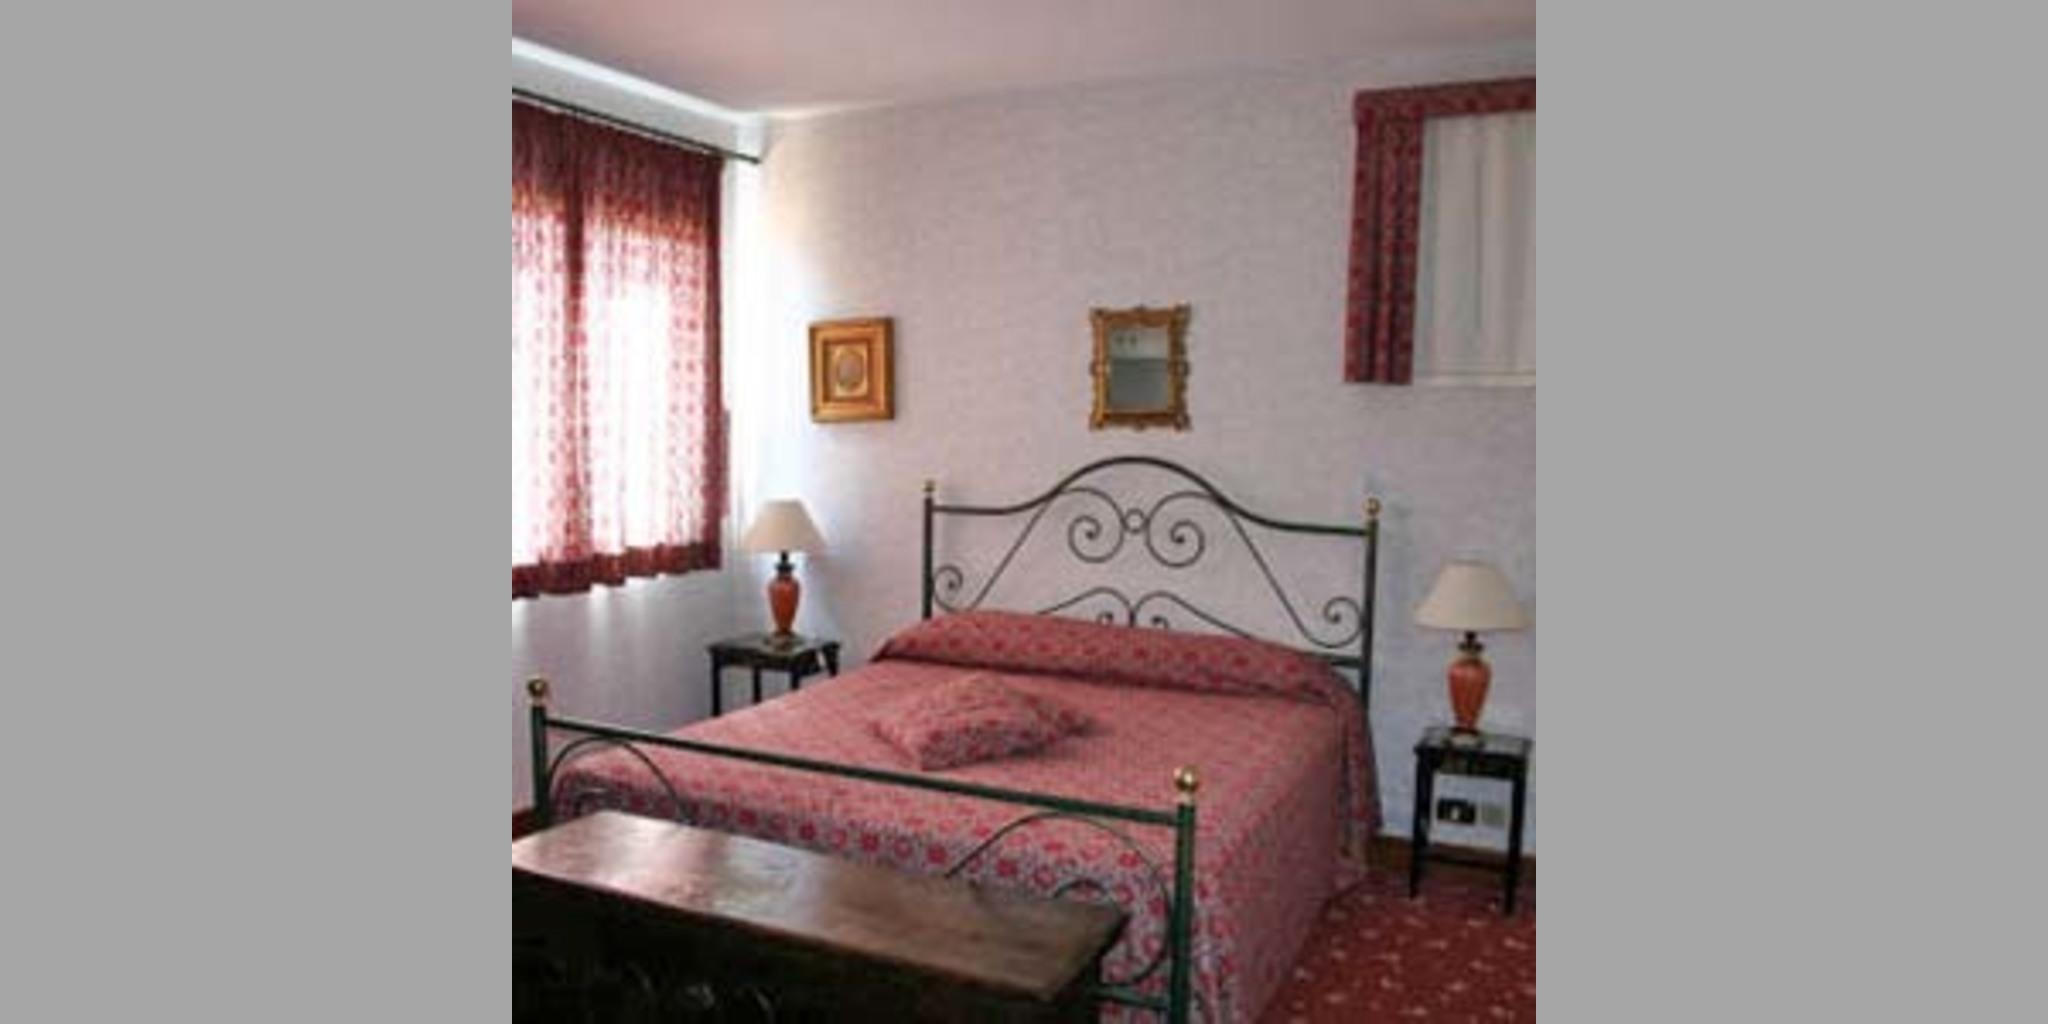 Bed & Breakfast Sant'Agata Di Militello - Catute'